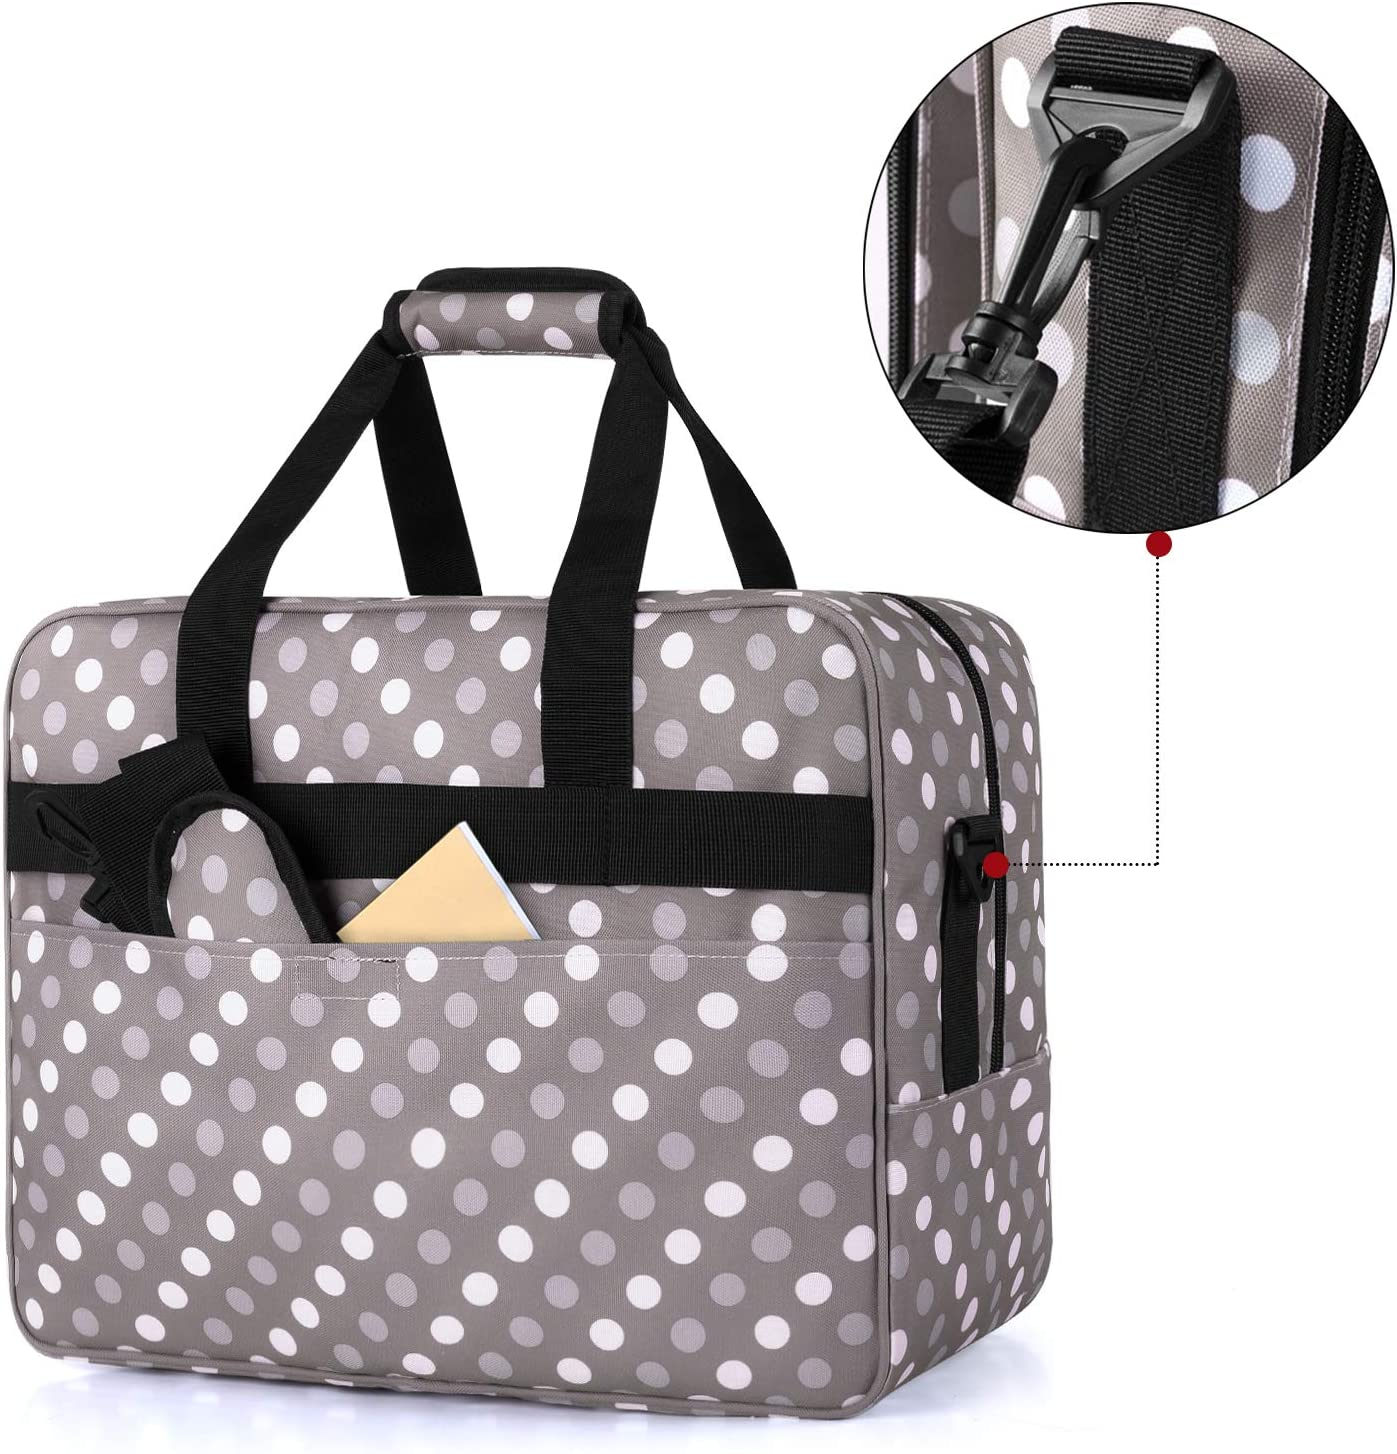 Black Luxja Sewing Machine Bag Brother Sewing Machines and Extra Sewing Accessories Portable Tote Bag Compatible with Most Singer